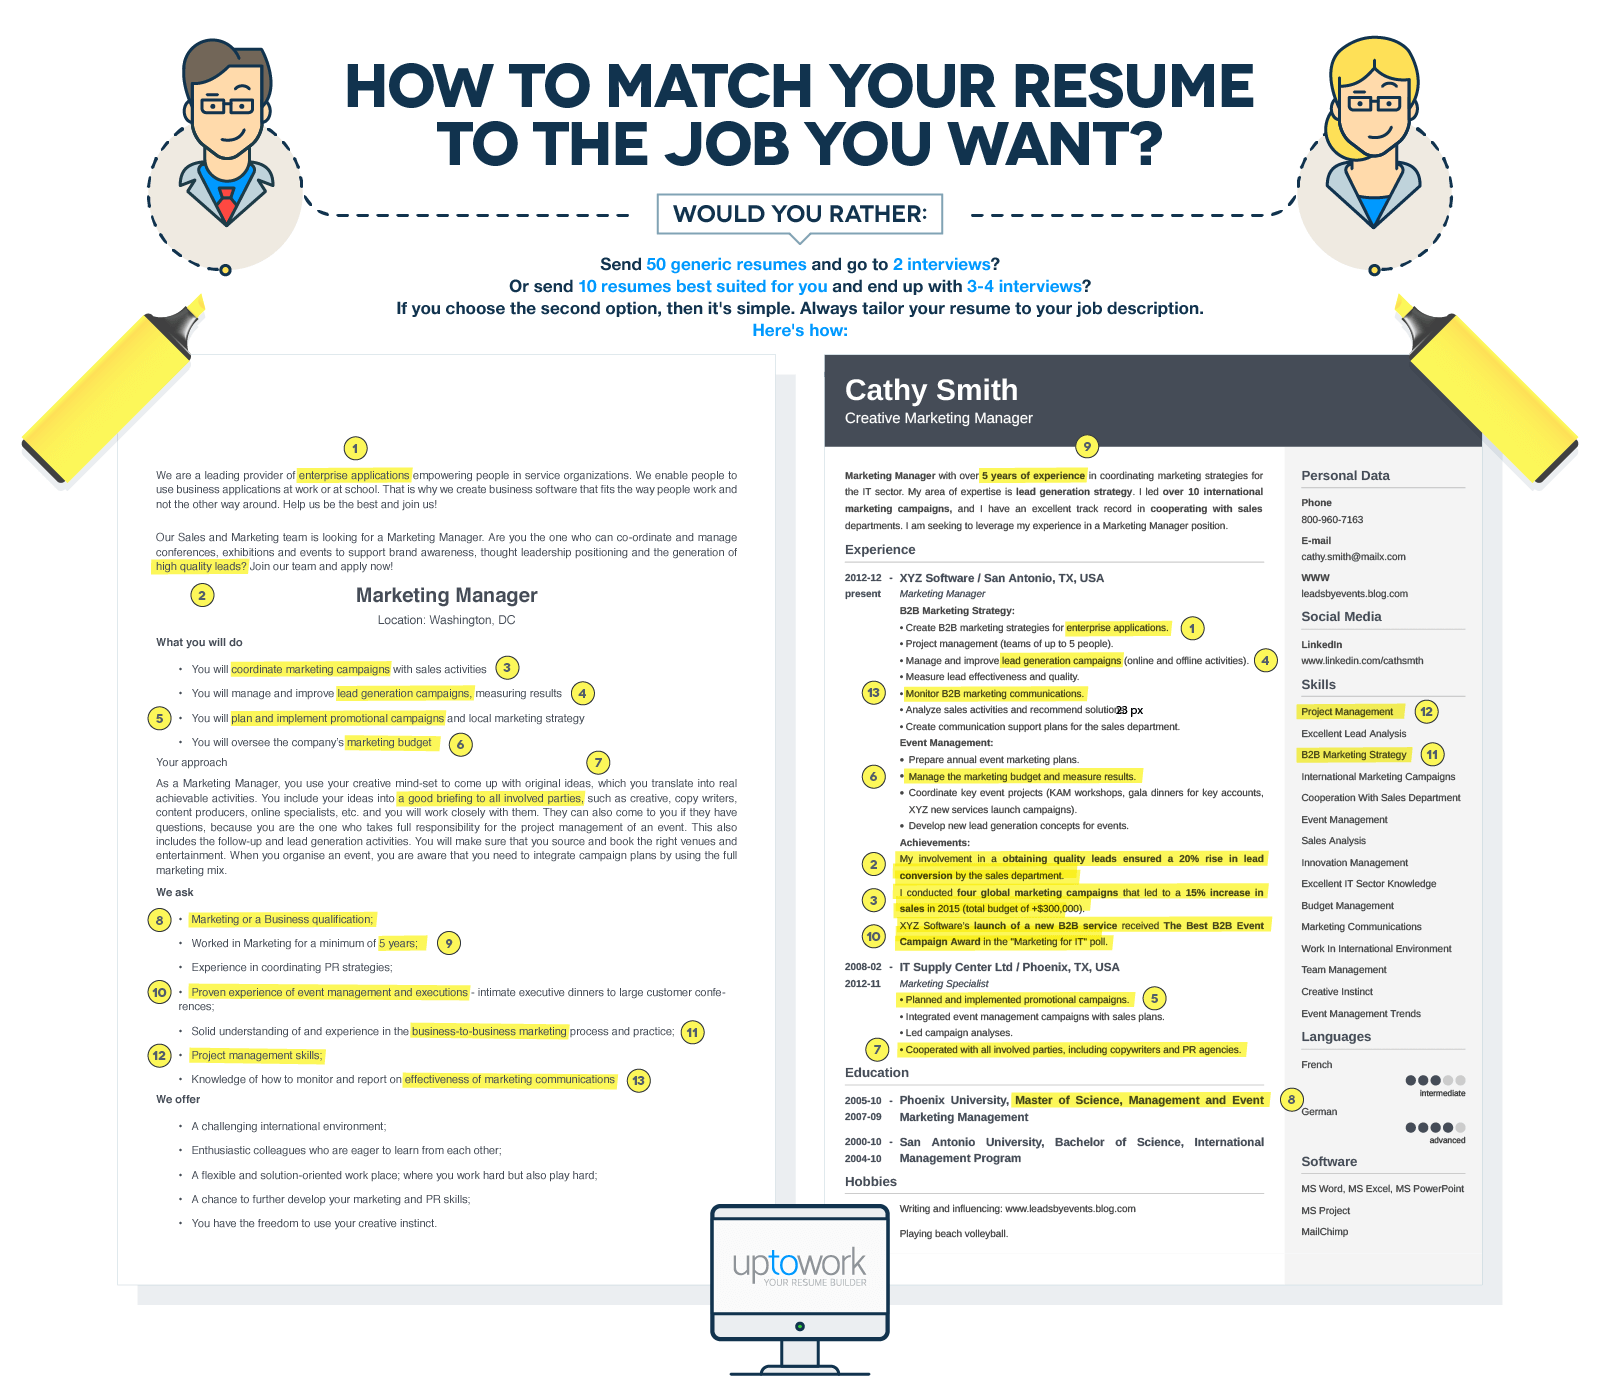 resume Resume To You 4 tips on how to tailor your resume a job offer and you will be sure that youve done good of tailoring before send hiring manager